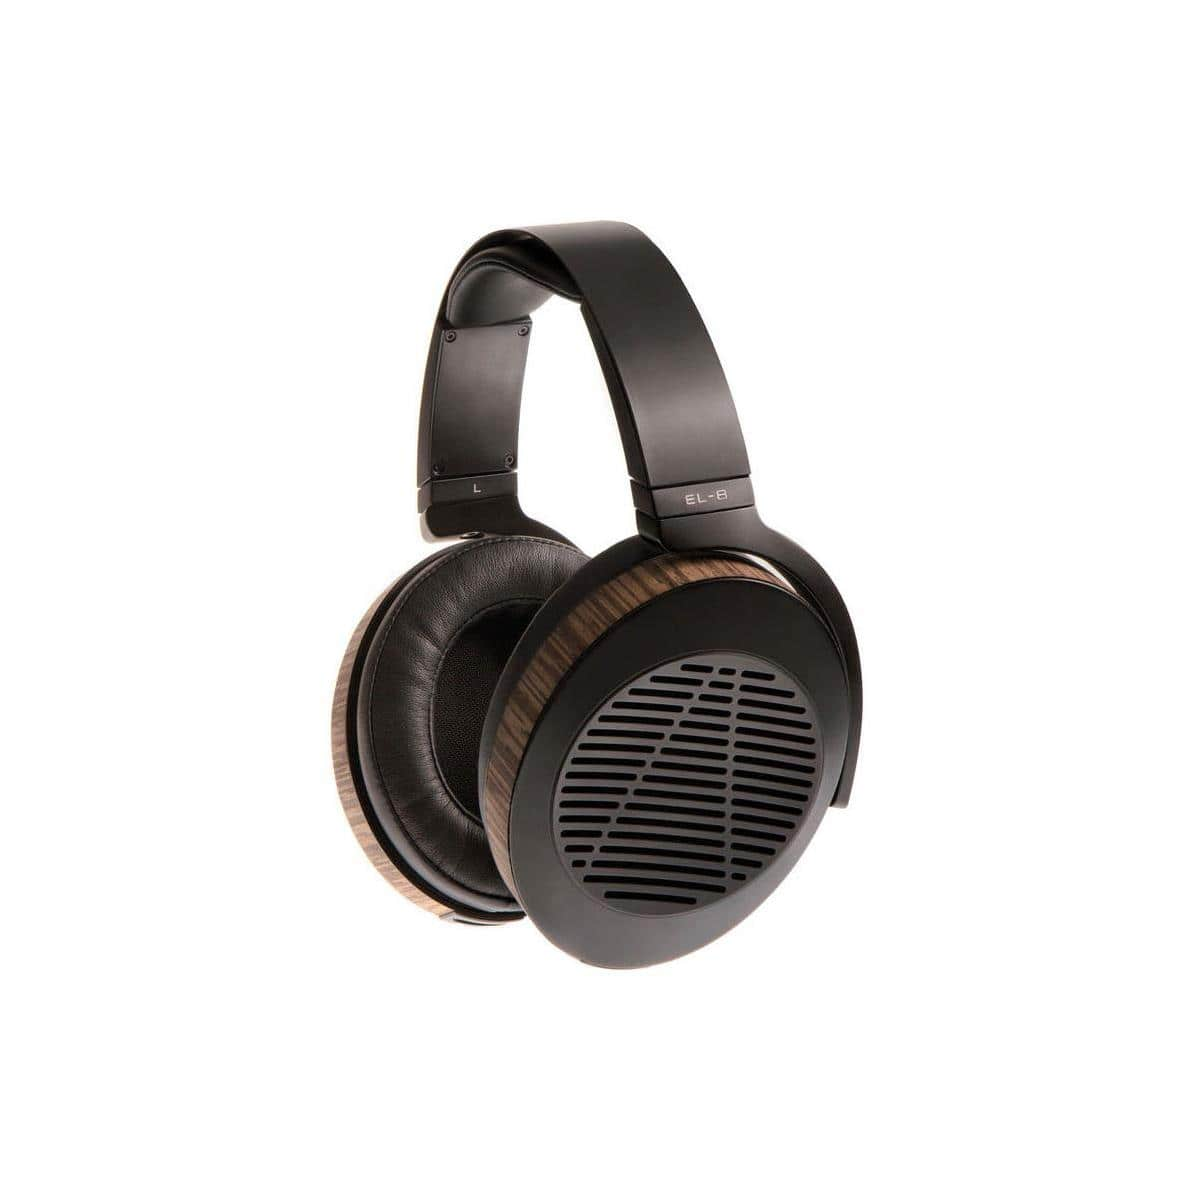 AUDEZE EL-8 Open Back Planar Magnetic Headphones with In-Line Mic and Standard Audio Cable $449.99 fs @ adorama